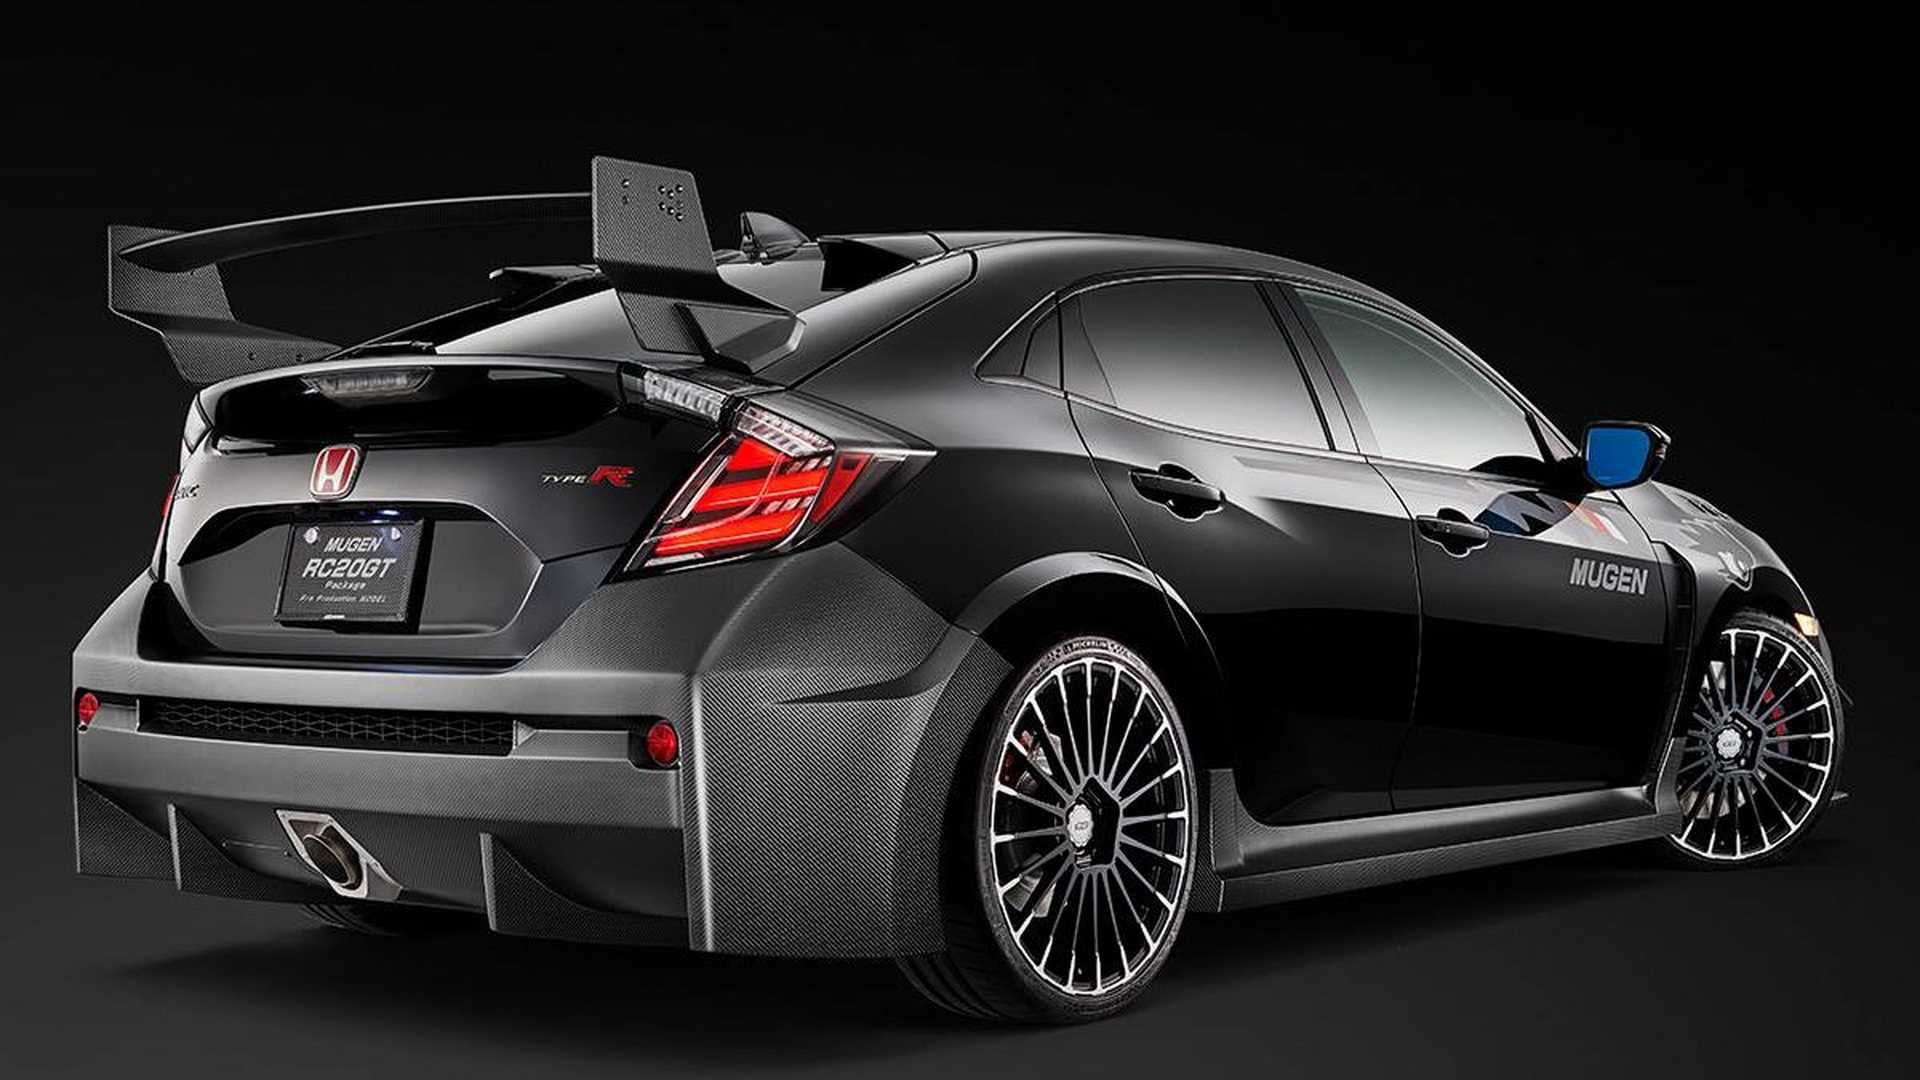 honda-civic-type-r-mugen-rc20gt-package-pre-production-model (3)